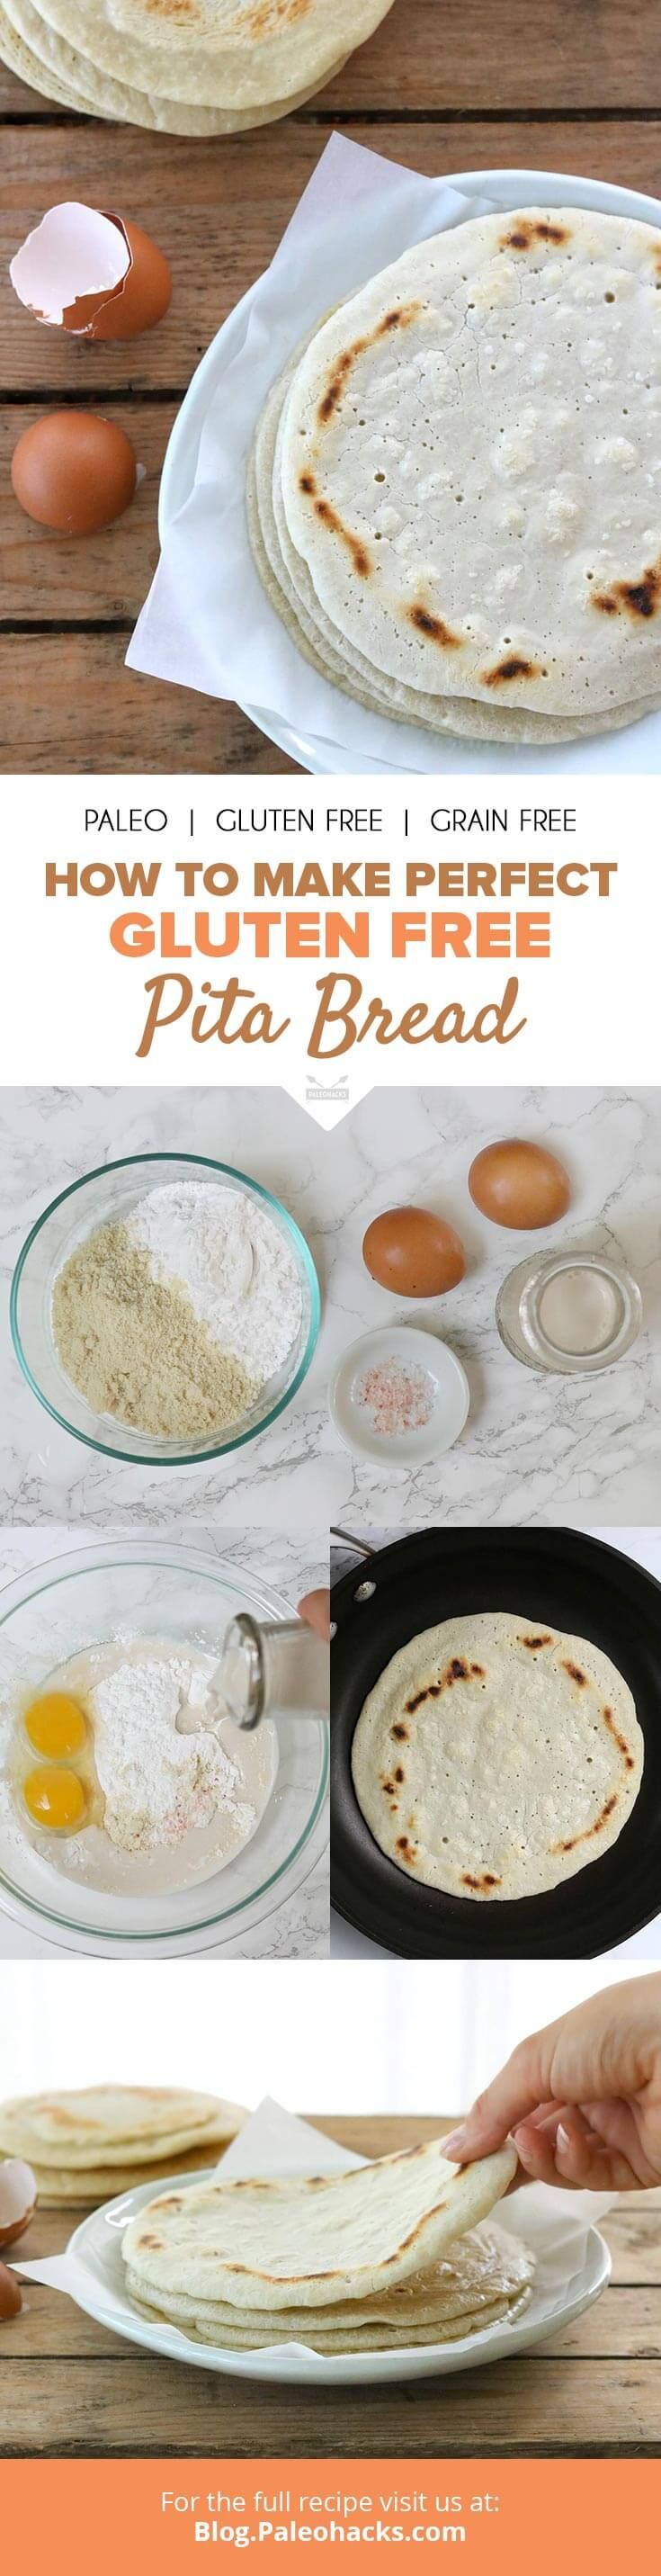 Warm, fluffy pita bread made with 5 gut-friendly ingredients. Get the recipe here: http://paleo.co/GFpitabread